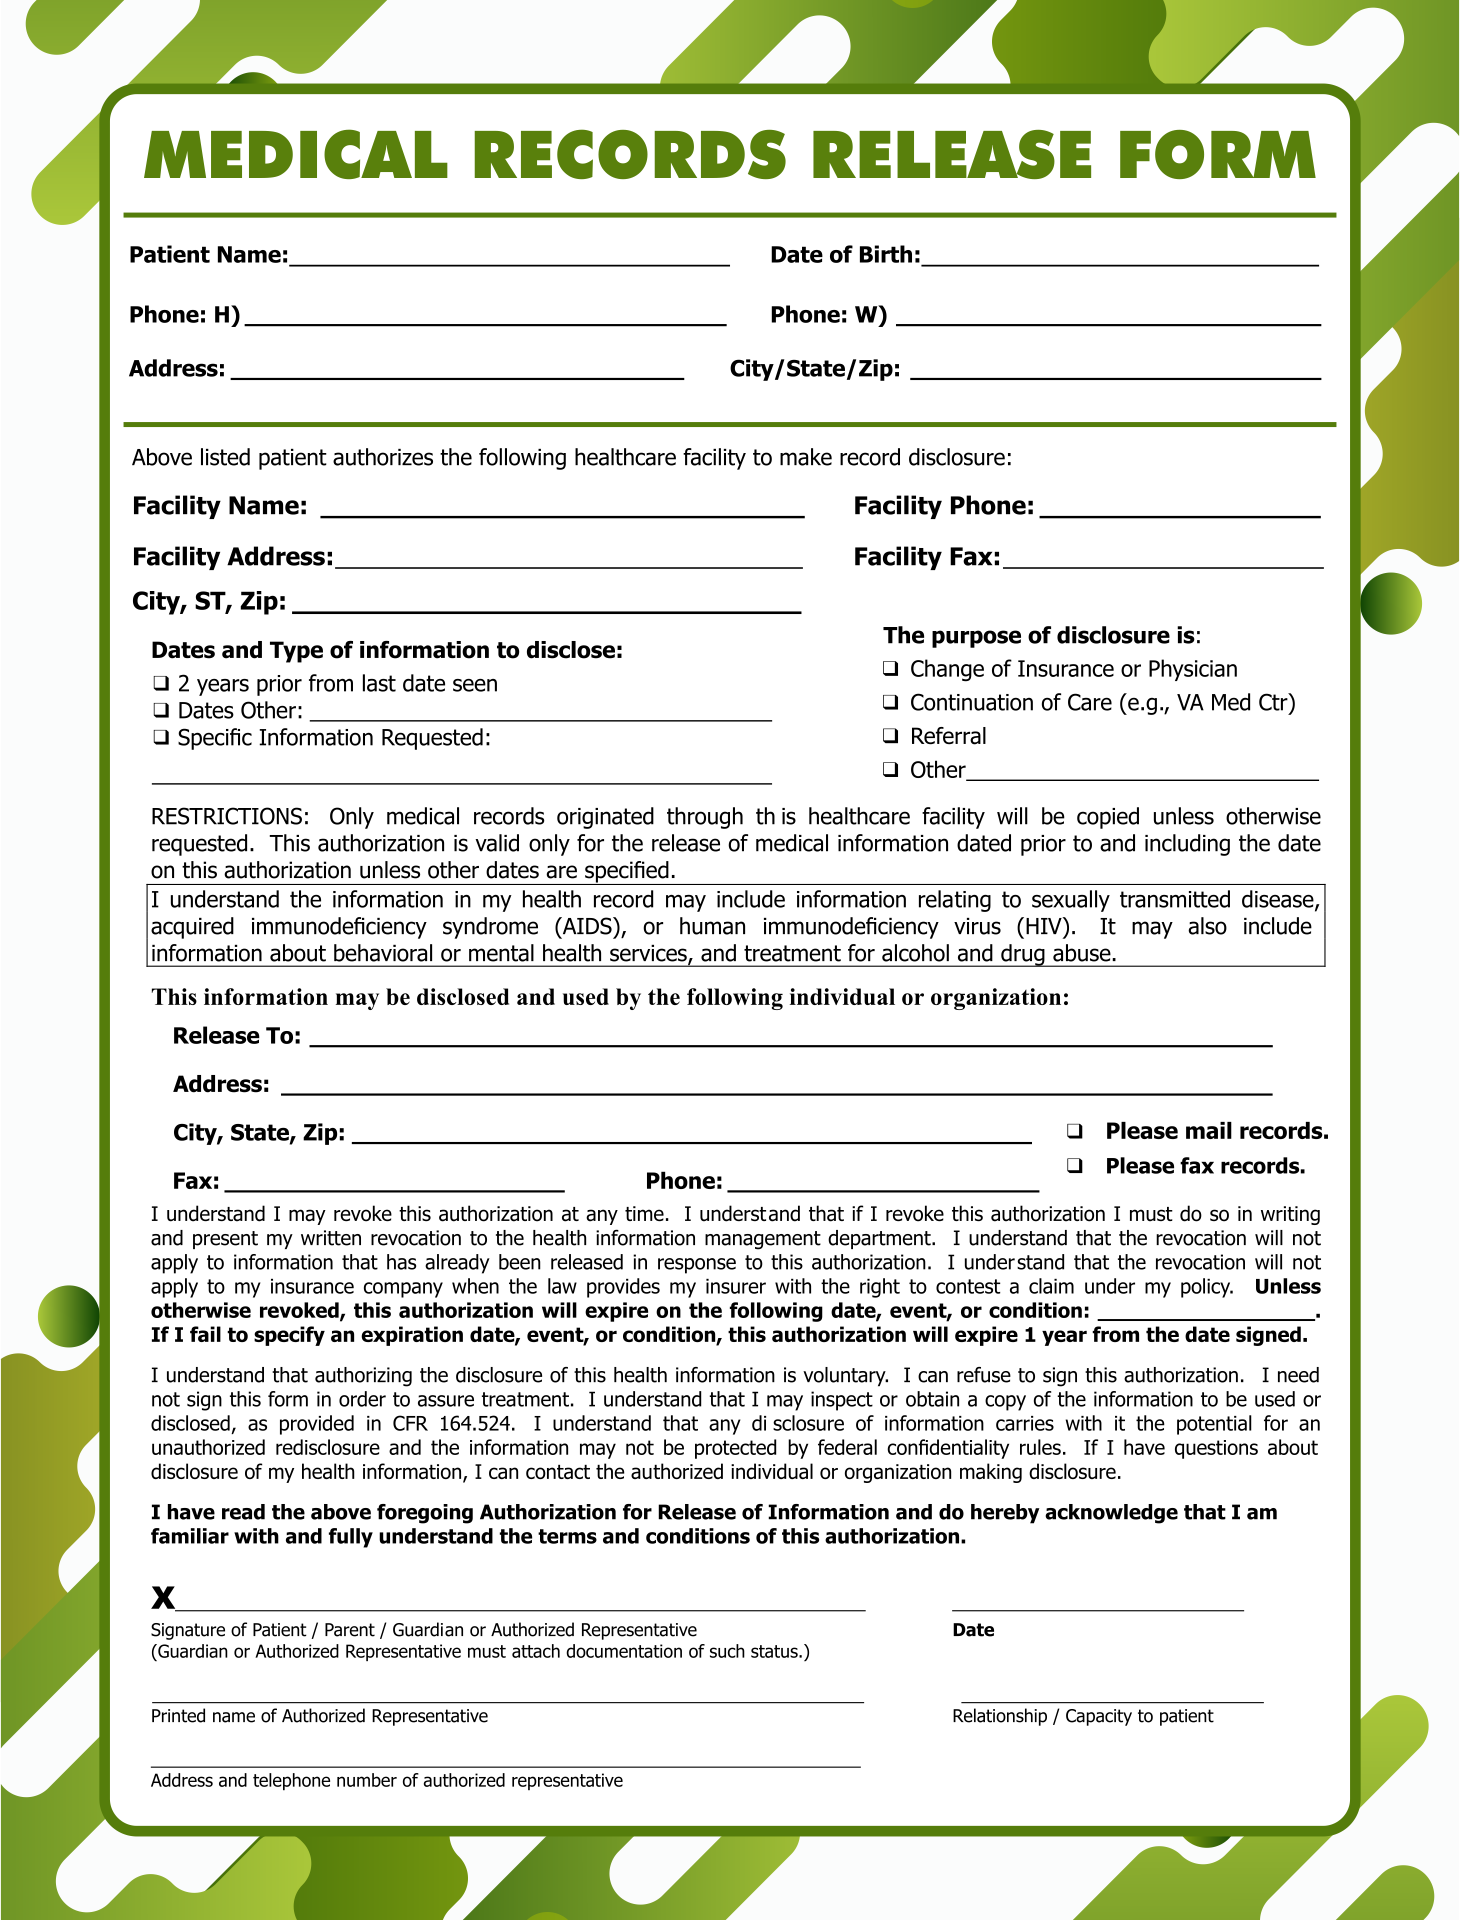 photographer copyright release form template - 4 best images of free printable medical release forms